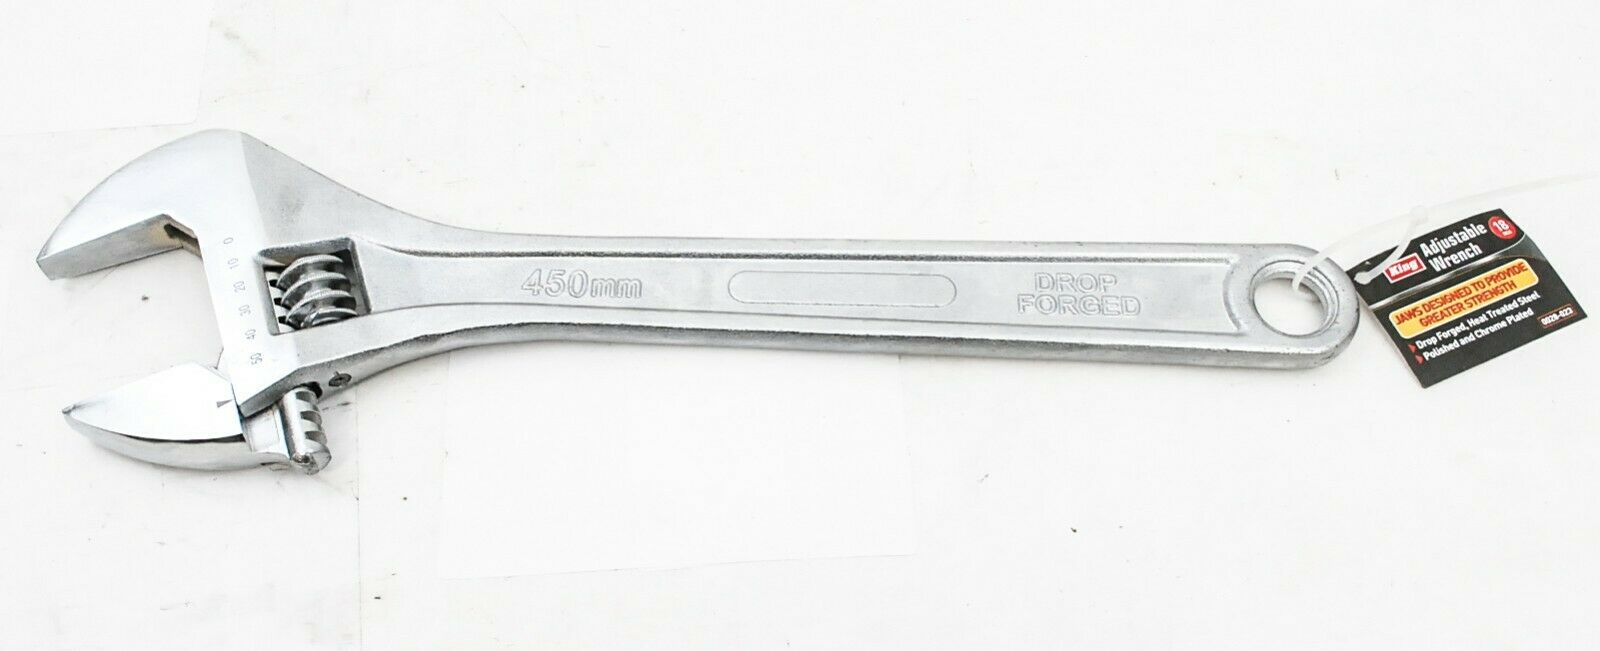 Allied Tools 51052 8-Inch Adjustable Wrench